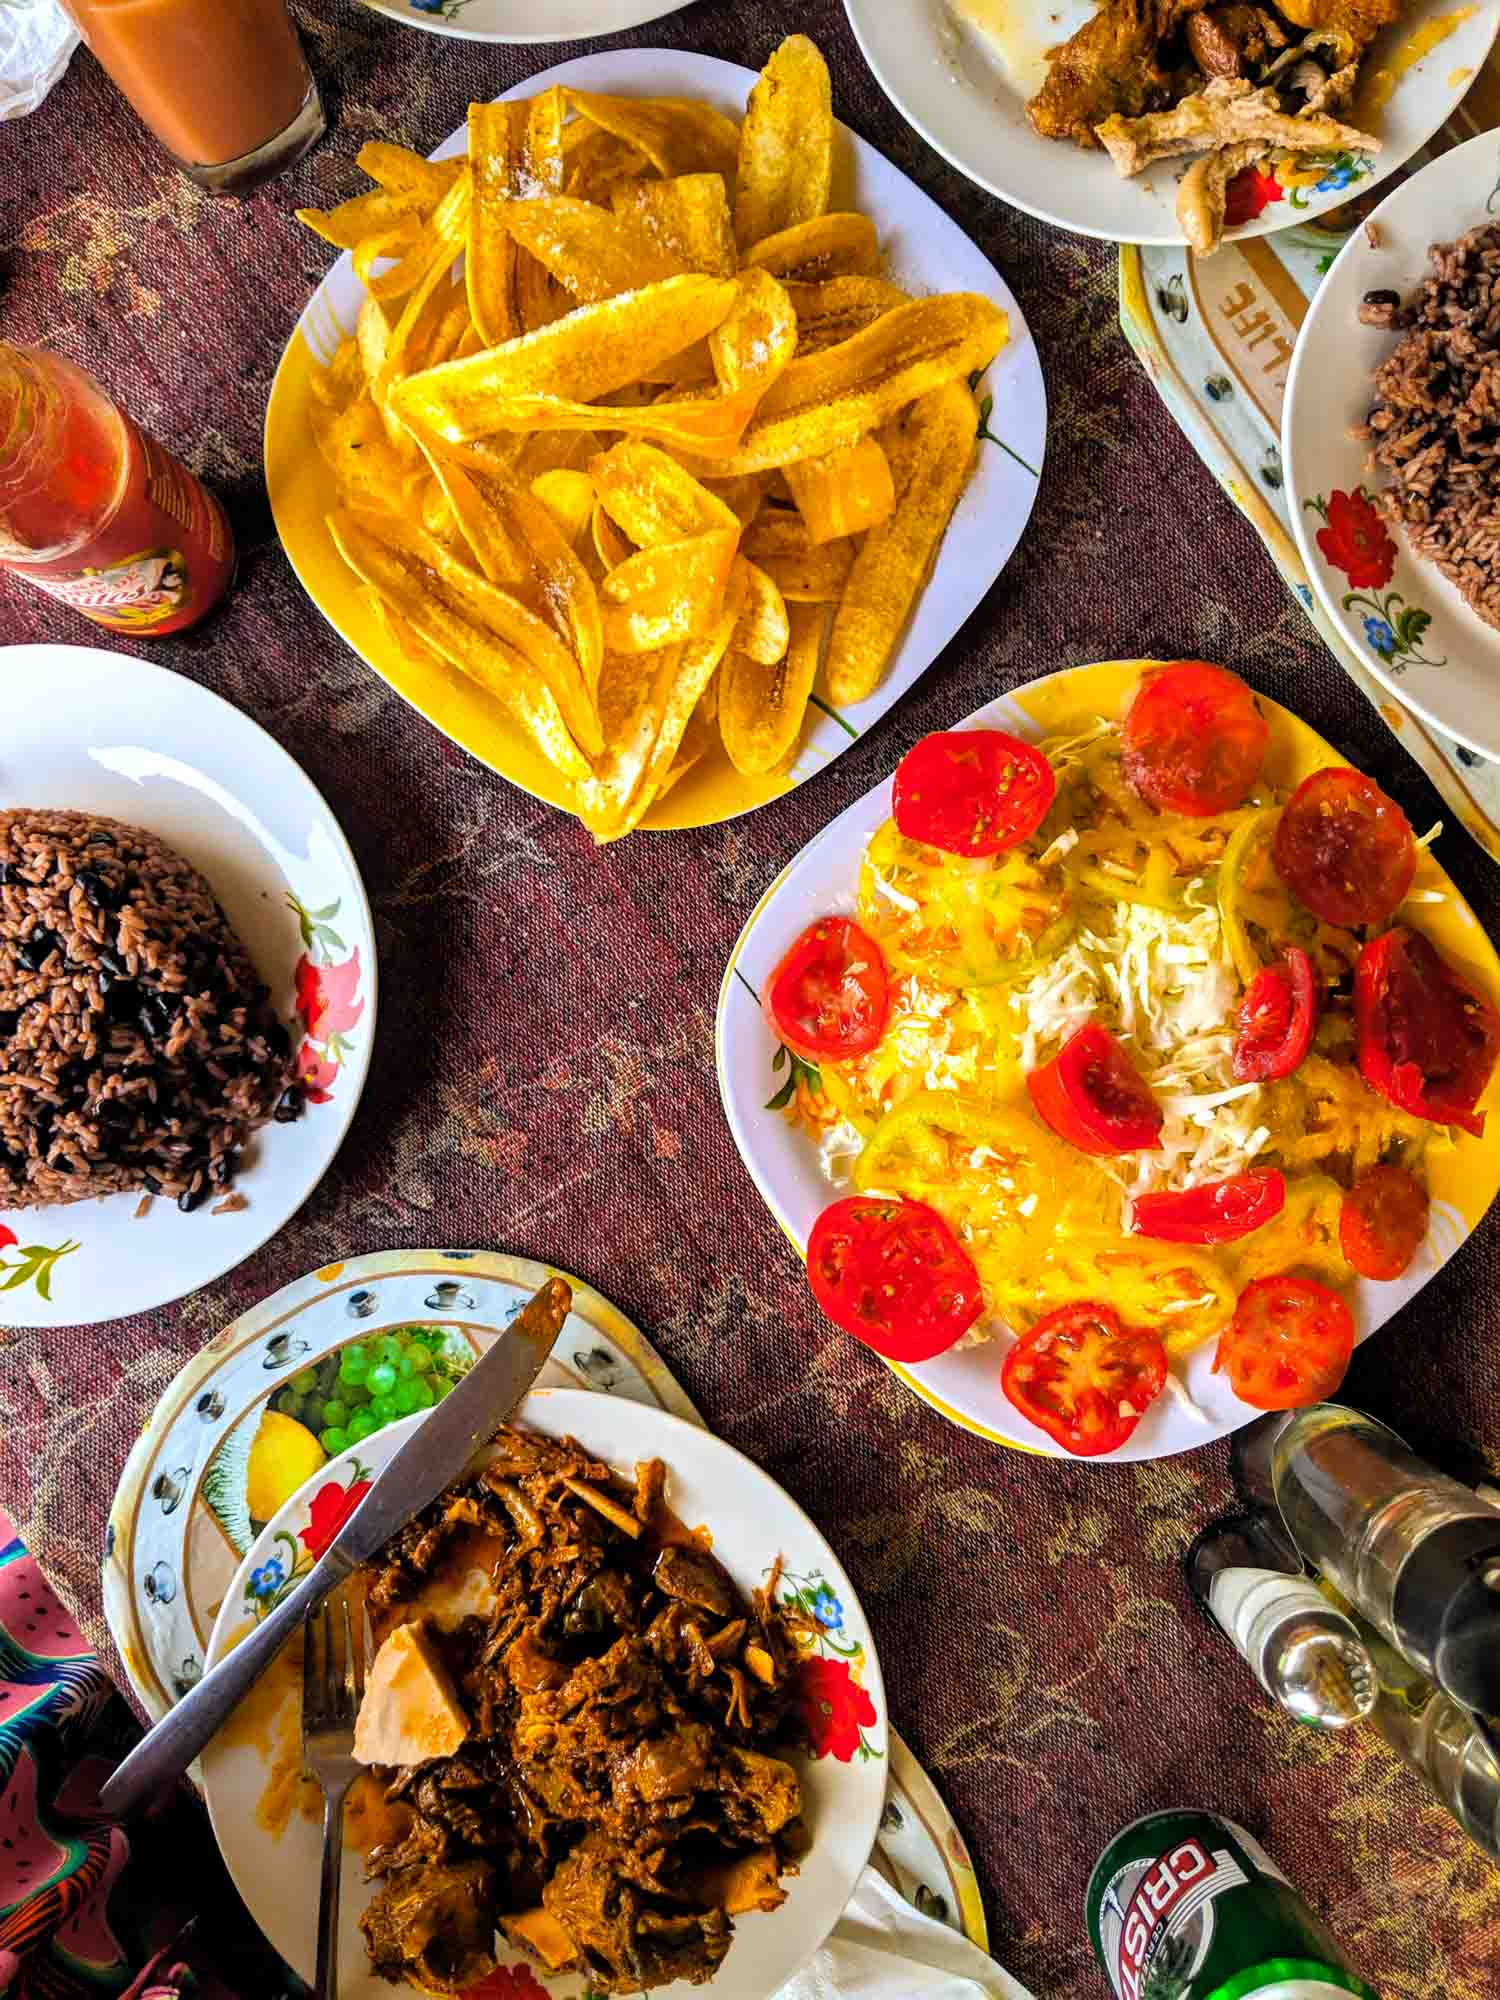 Typical countryside food at El Nicho, Cuba including plantains, cabbage, tomatoes, congri Cuban rice and stewed goat along with Cristal beer